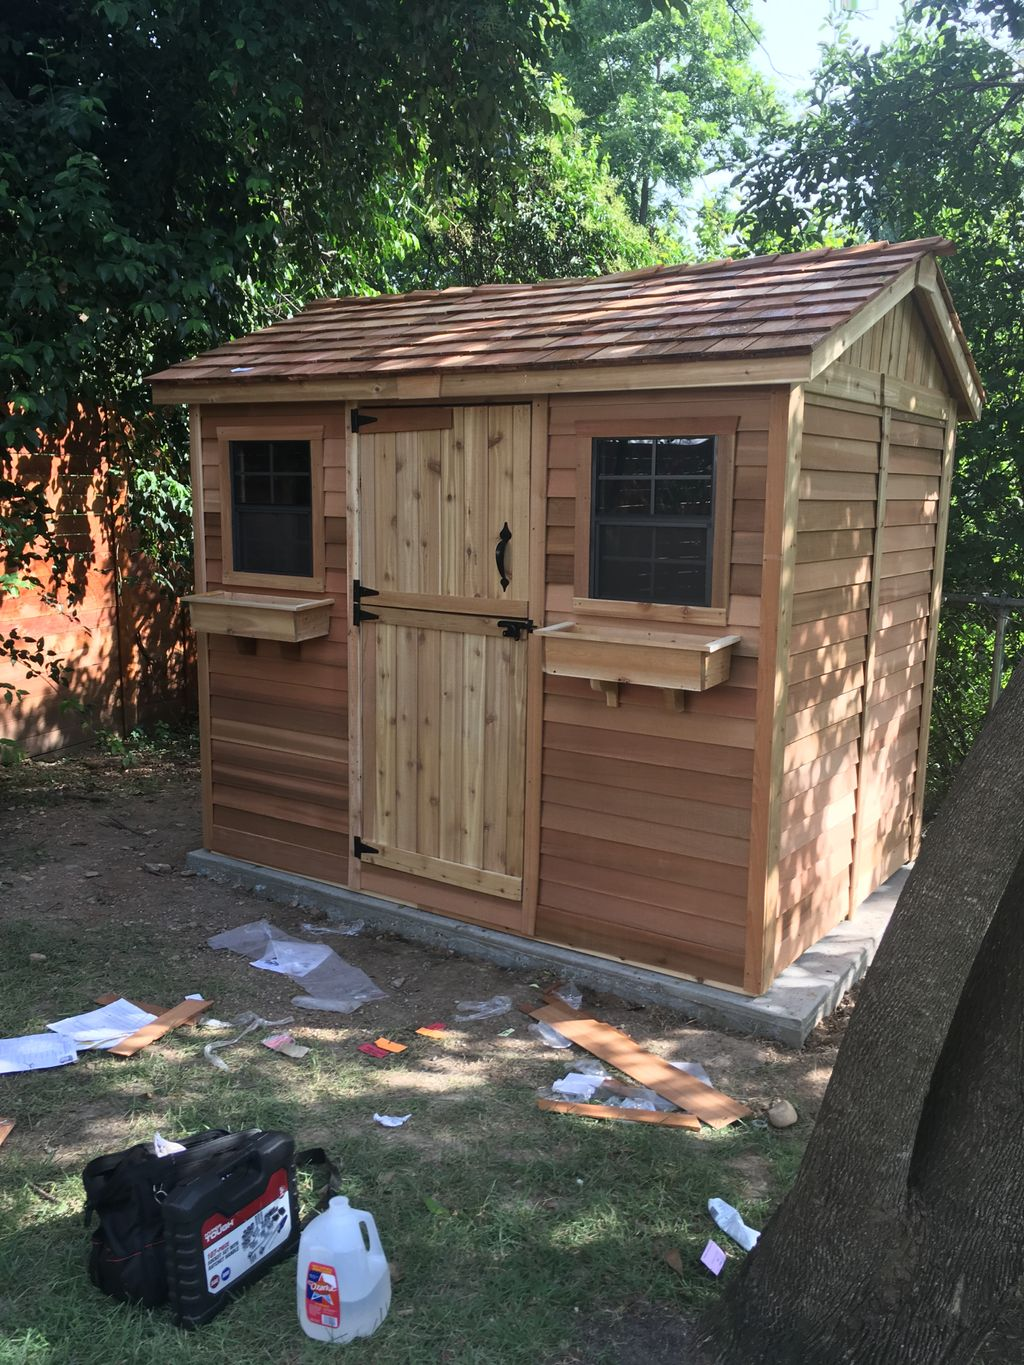 Shed for the backyard